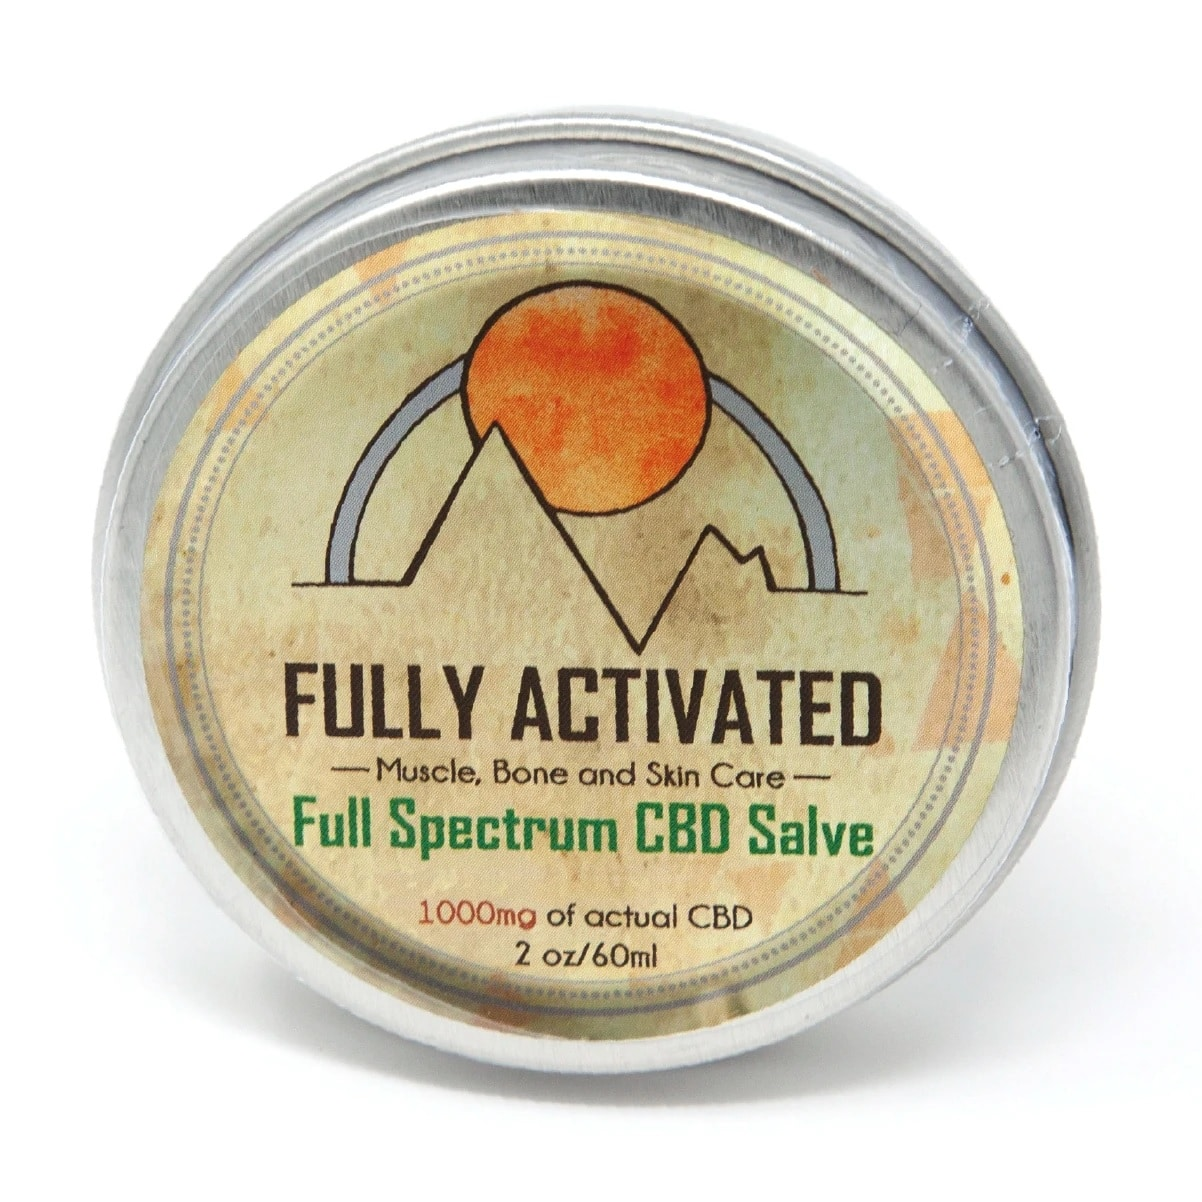 Image of Fully Activated – Full Spectrum Salve